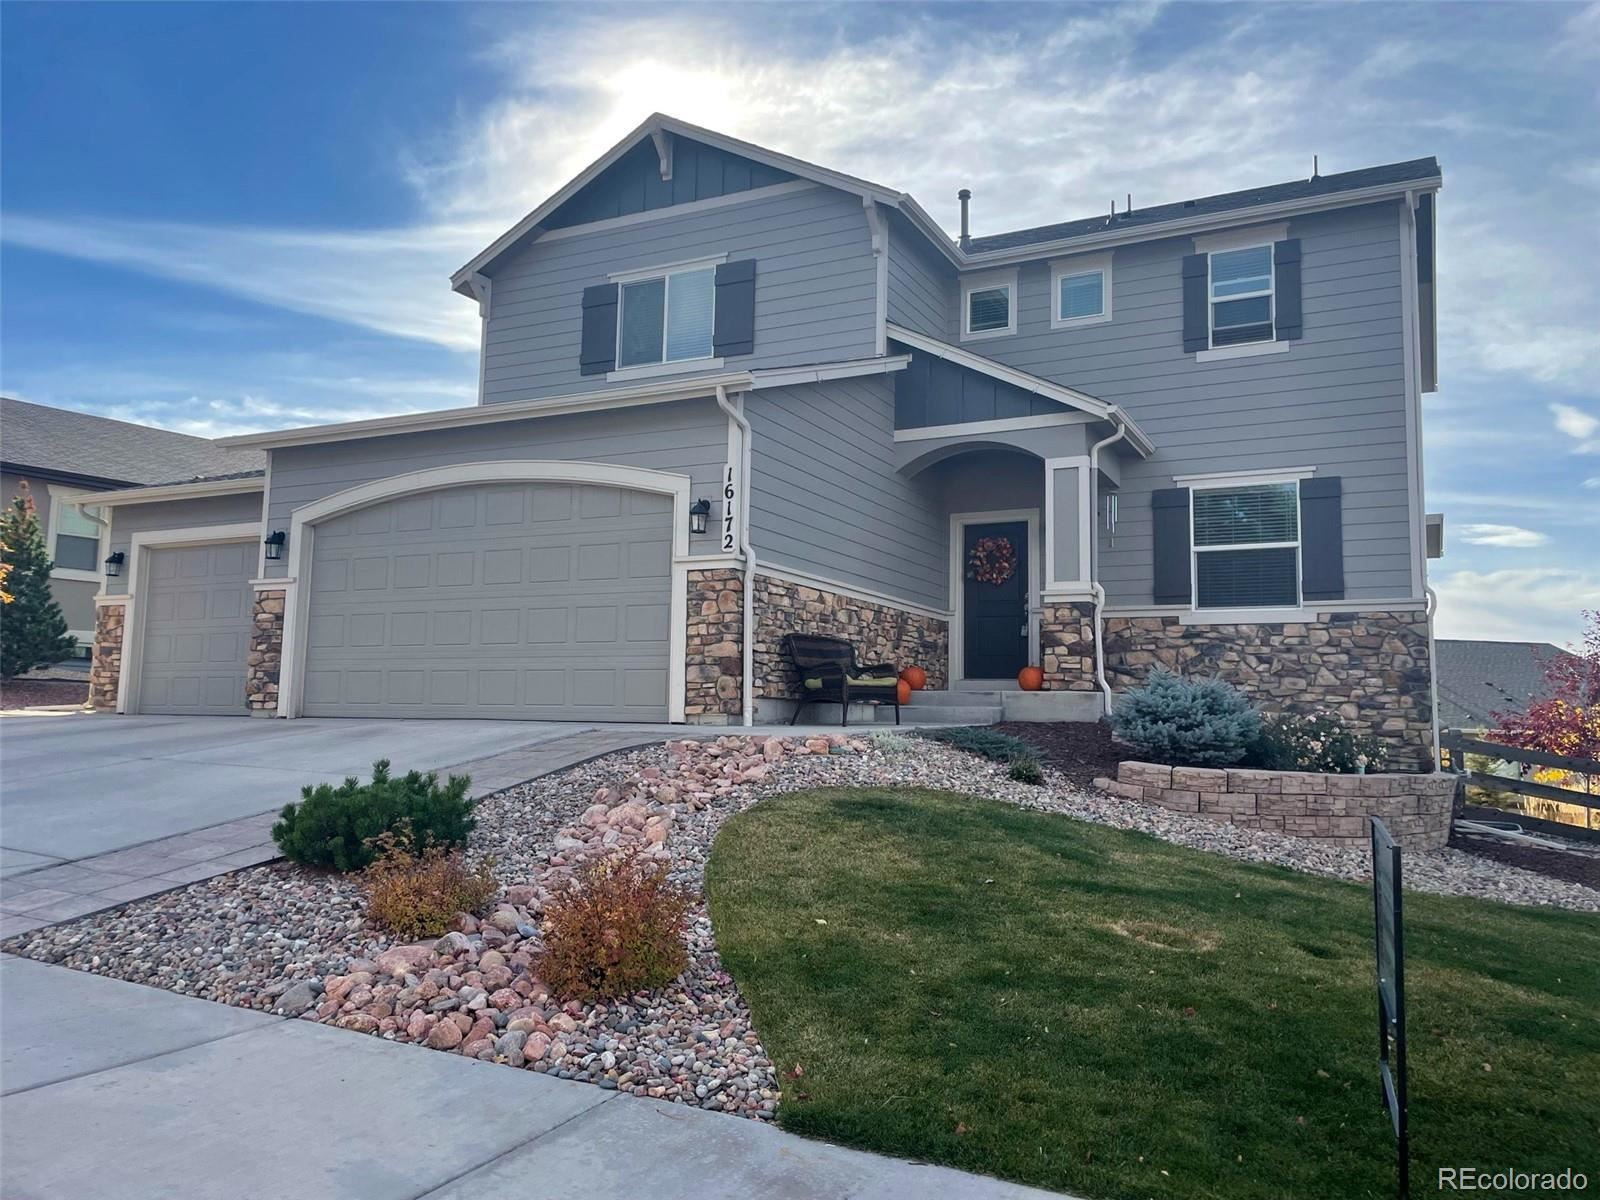 Photo of 16172 St Lawrence Way, Monument, CO 80132 (MLS # 1891570)